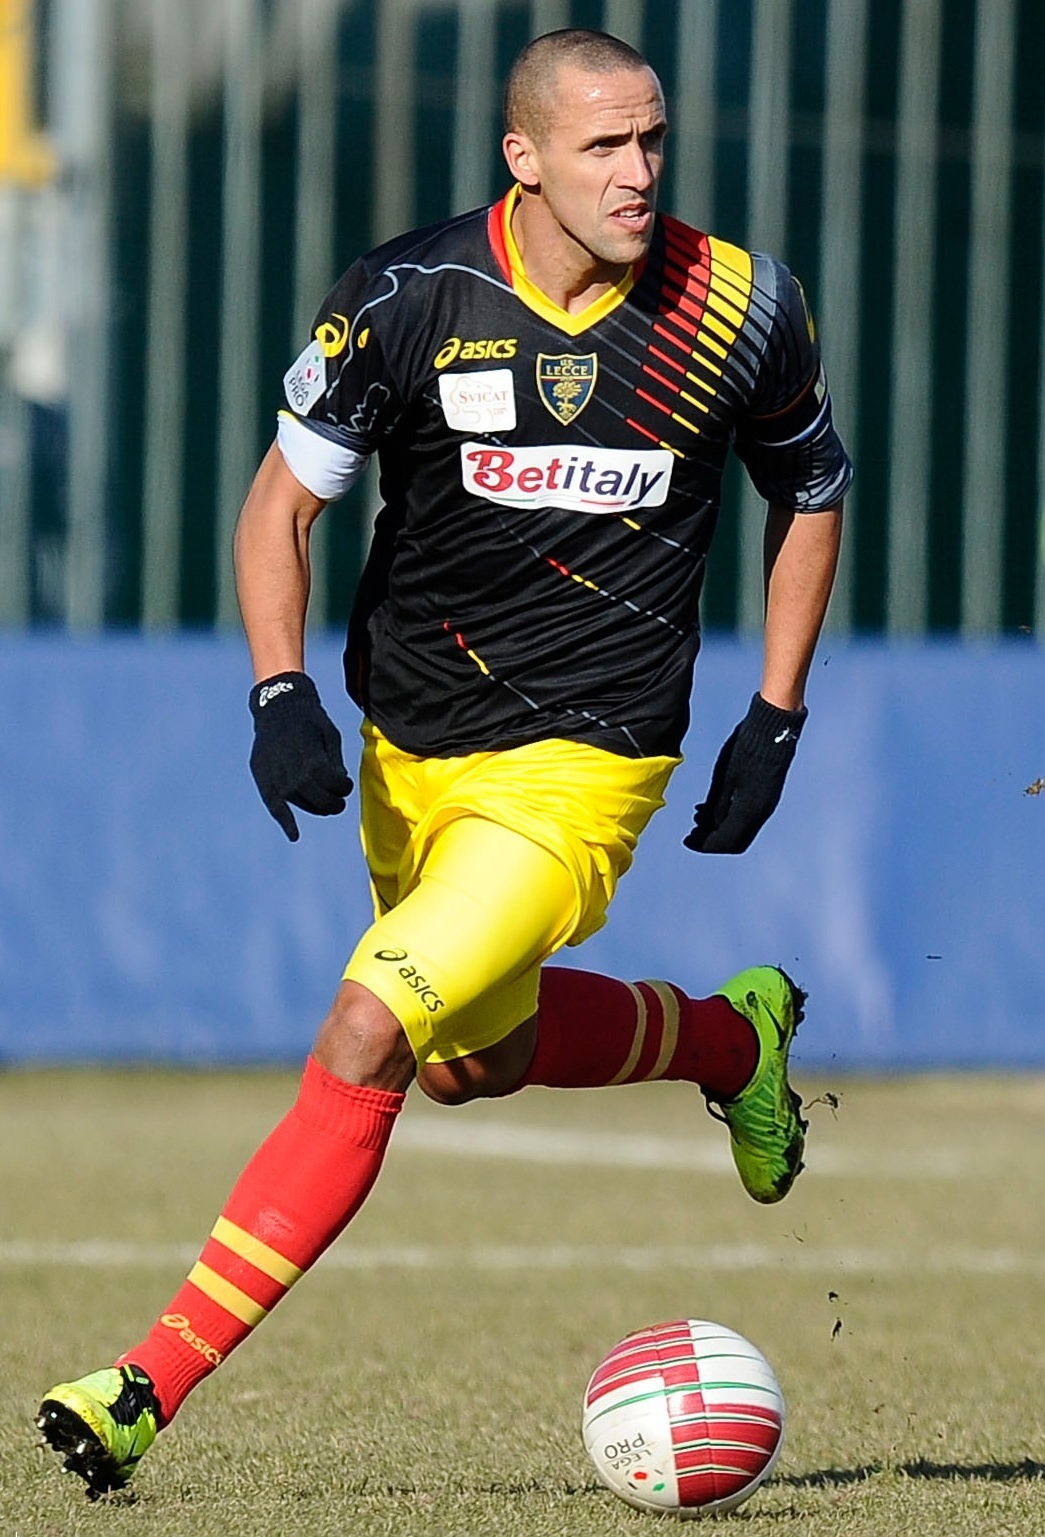 Lecce-2012-13-asics-away-kit.jpg